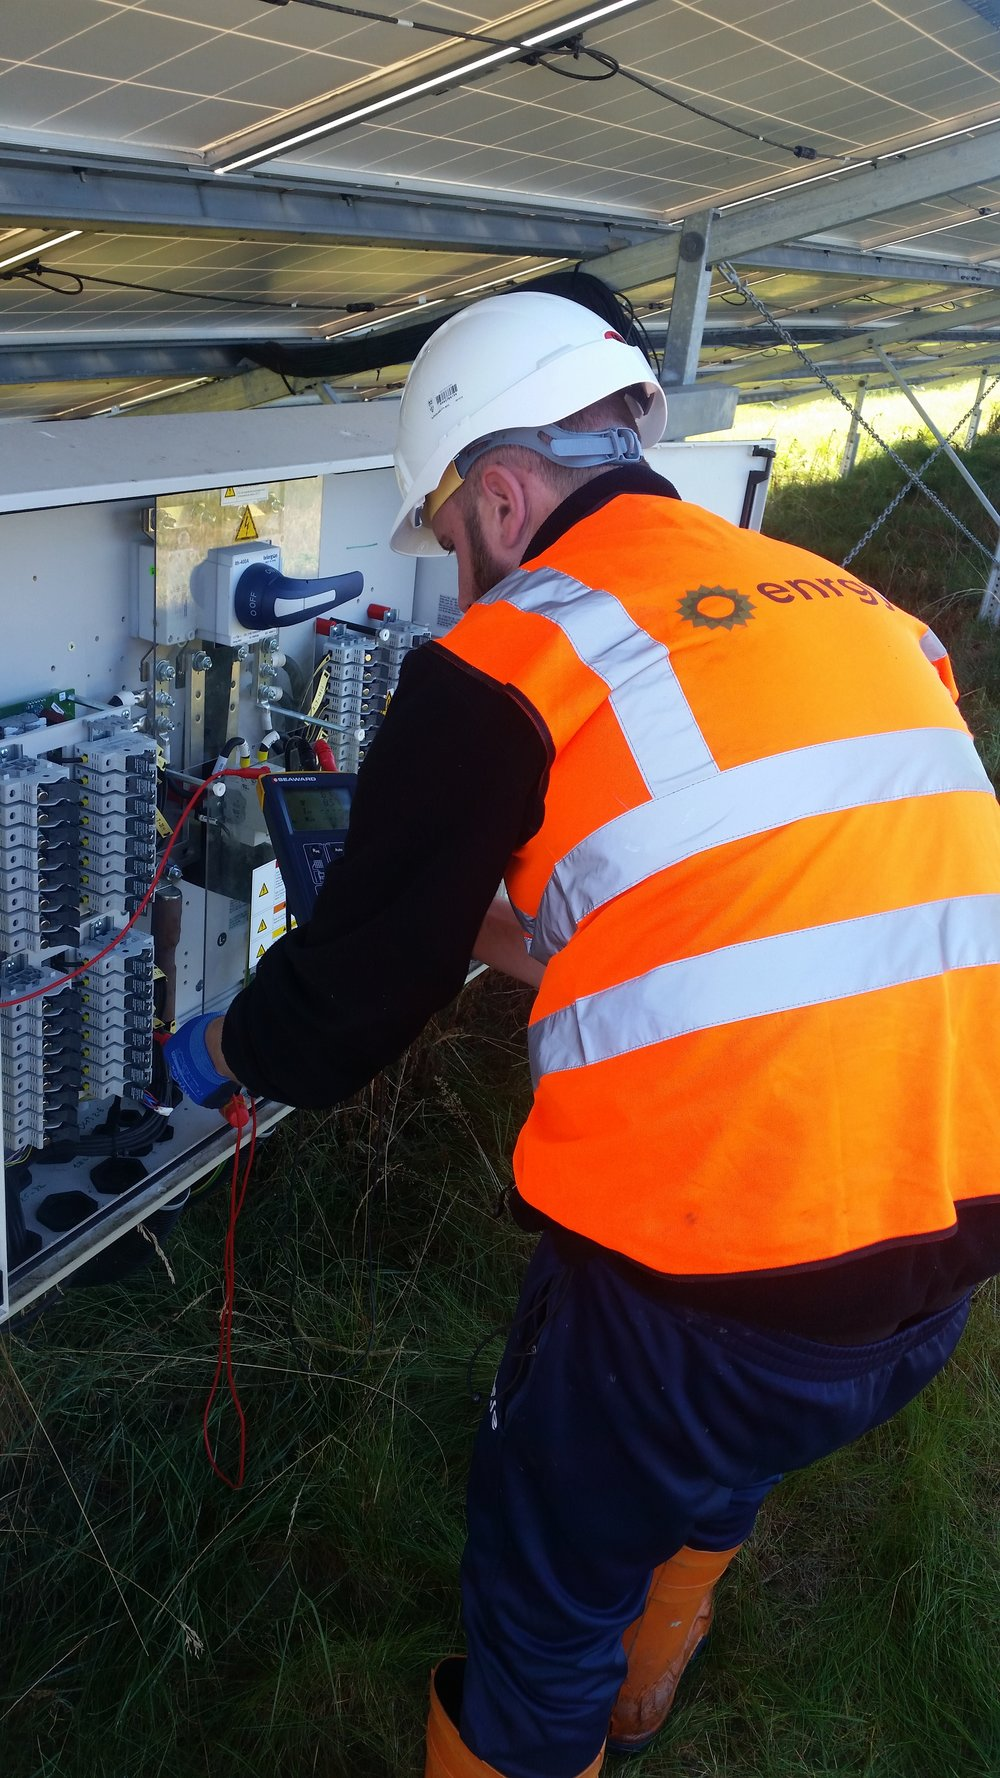 - Field engineer undertaking annual DC testing on a 32 way string combiner box. This 28MW site has 140 such boxes to test.